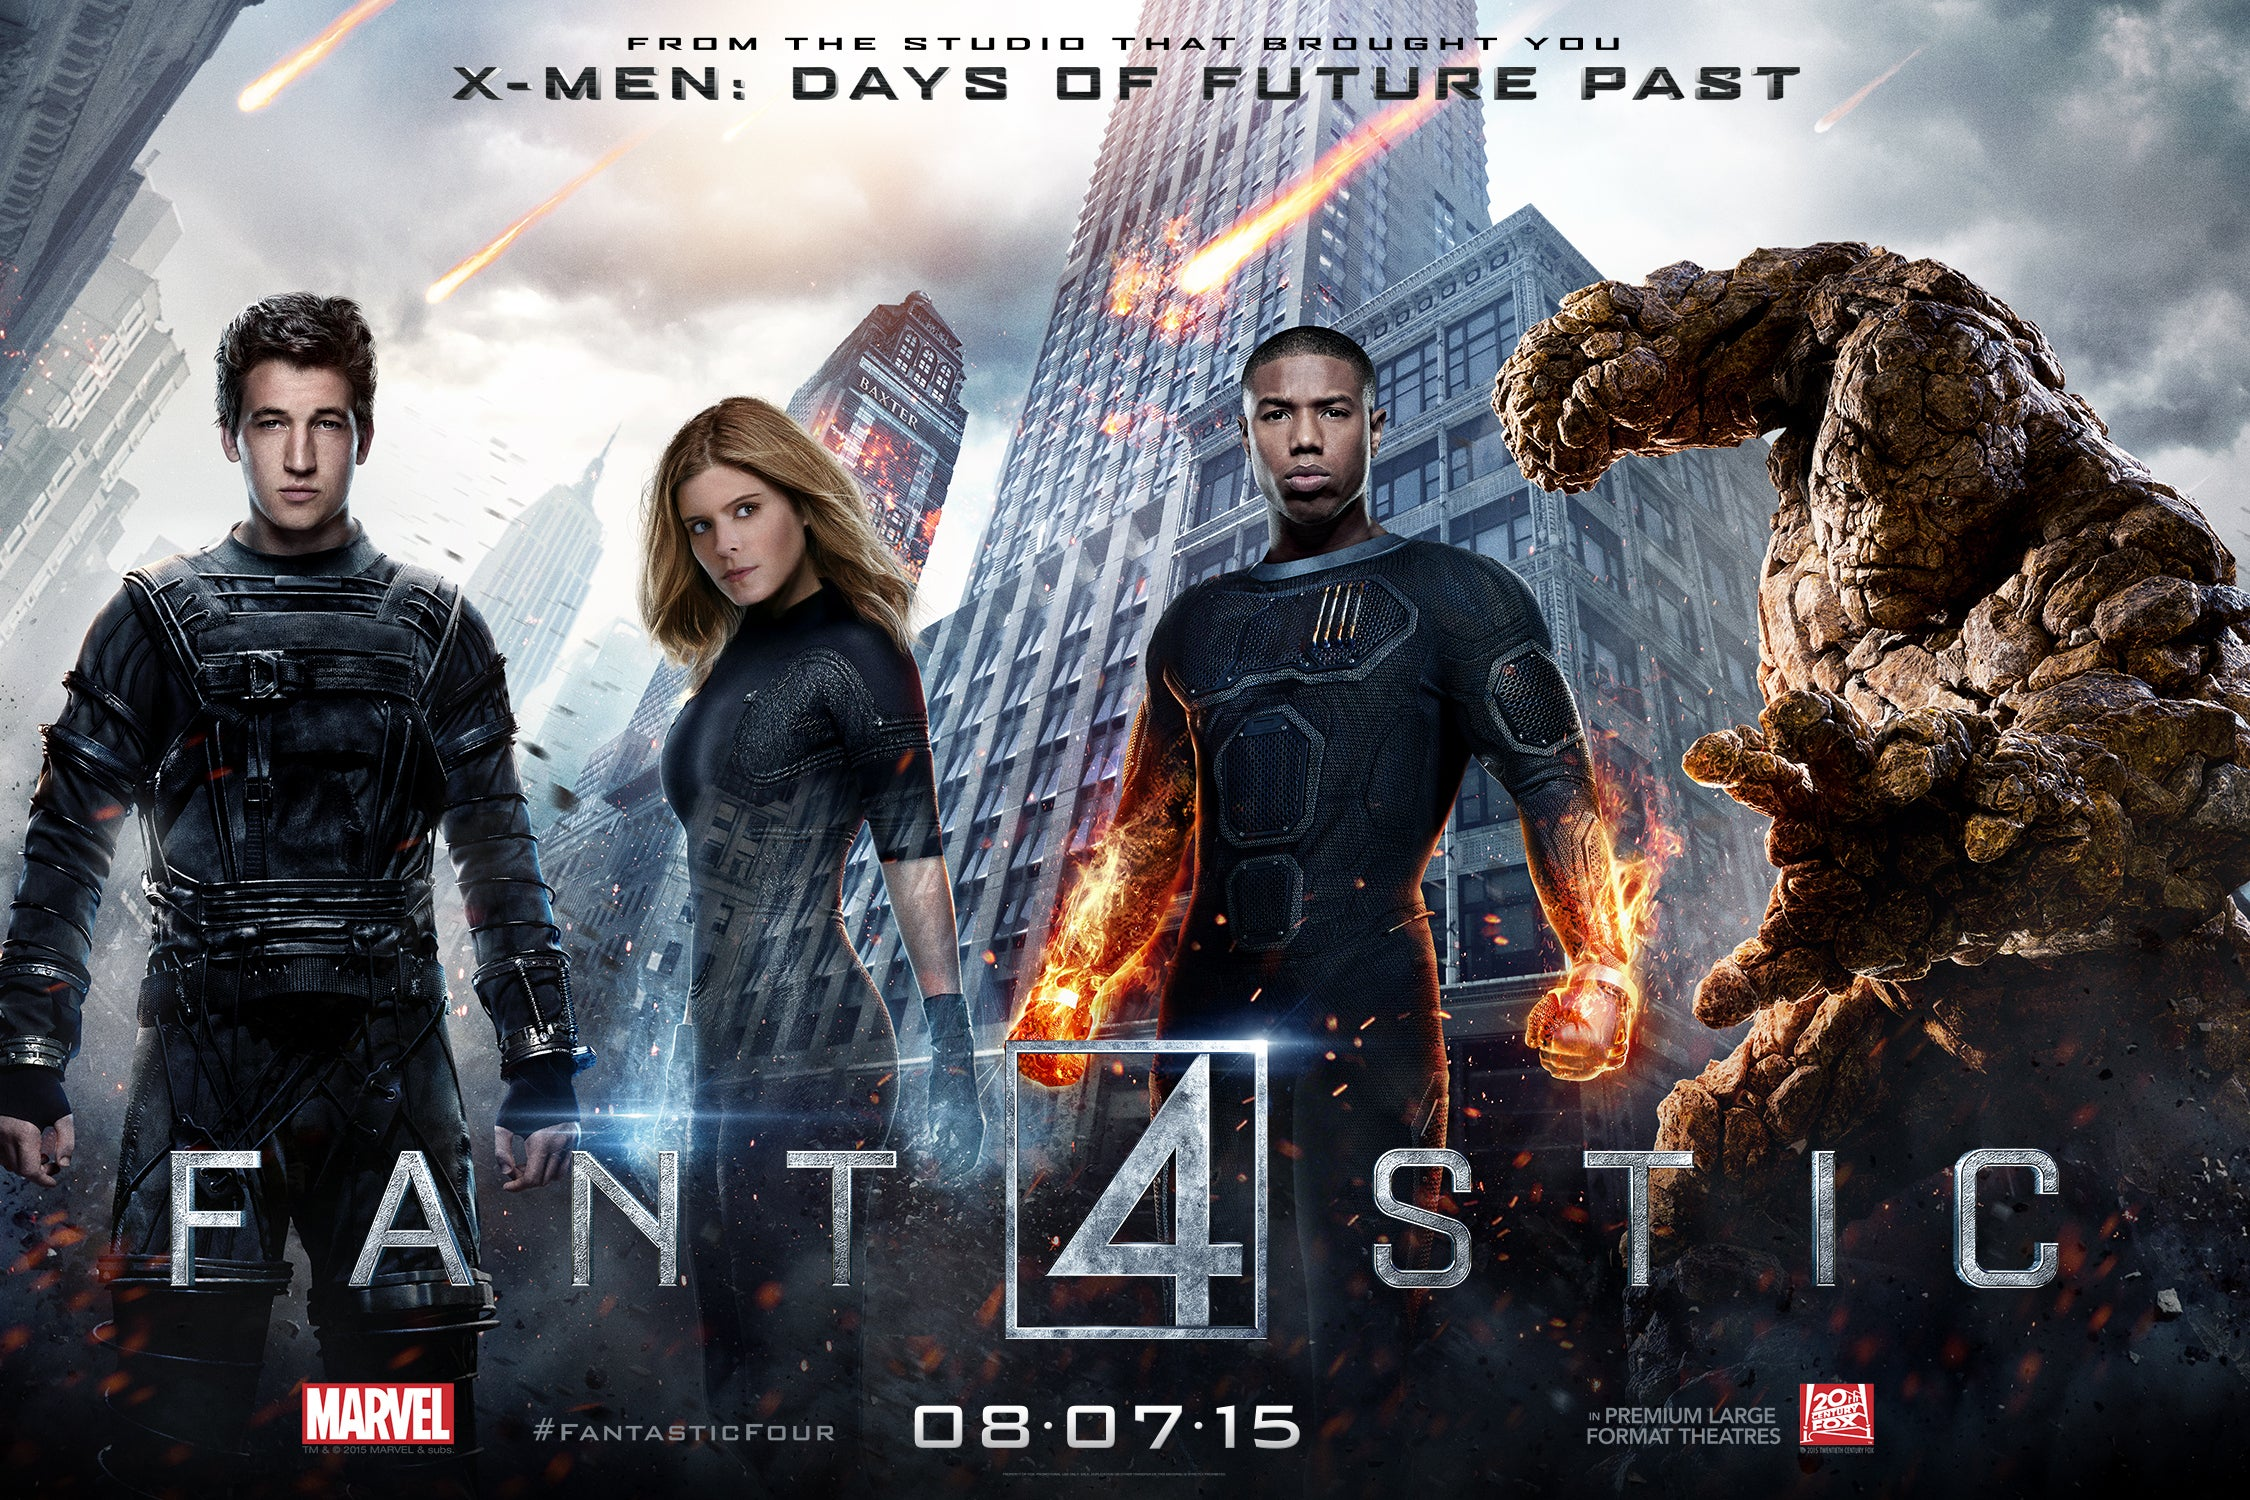 http://media.comicbook.com/uploads1/2015/08/fantastic-four-banner-146299.jpeg